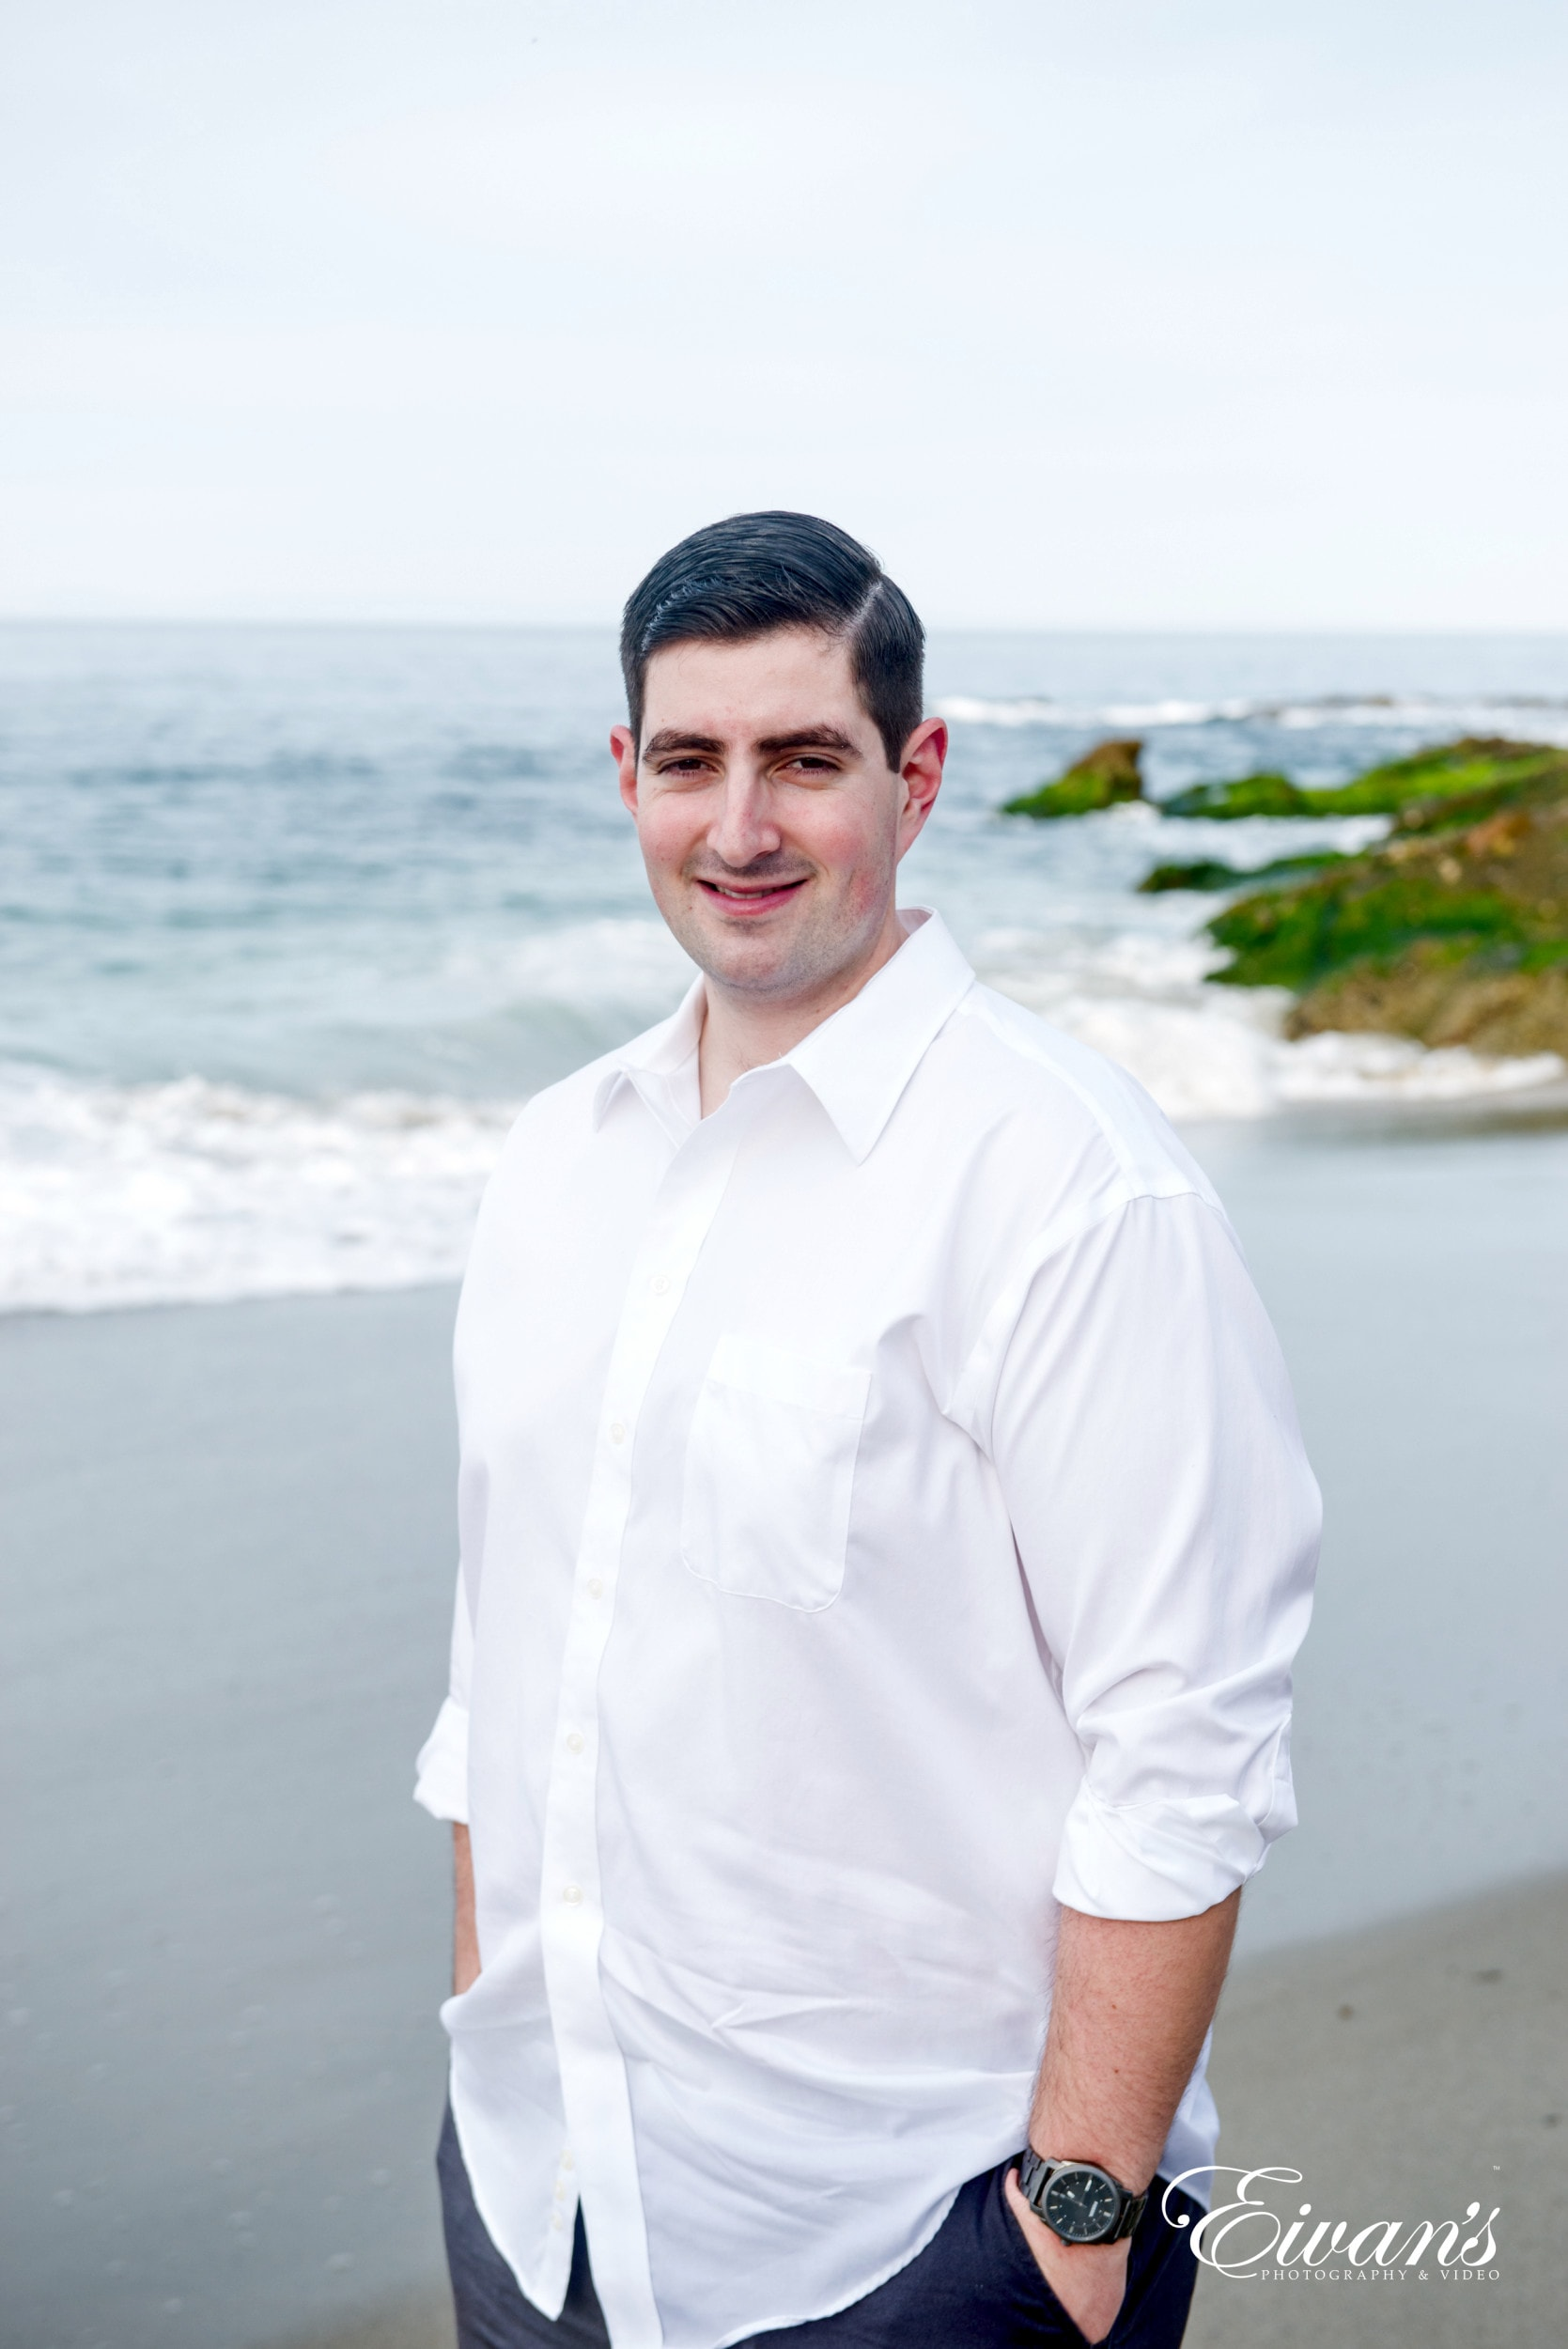 man in white dress shirt standing on beach during daytime